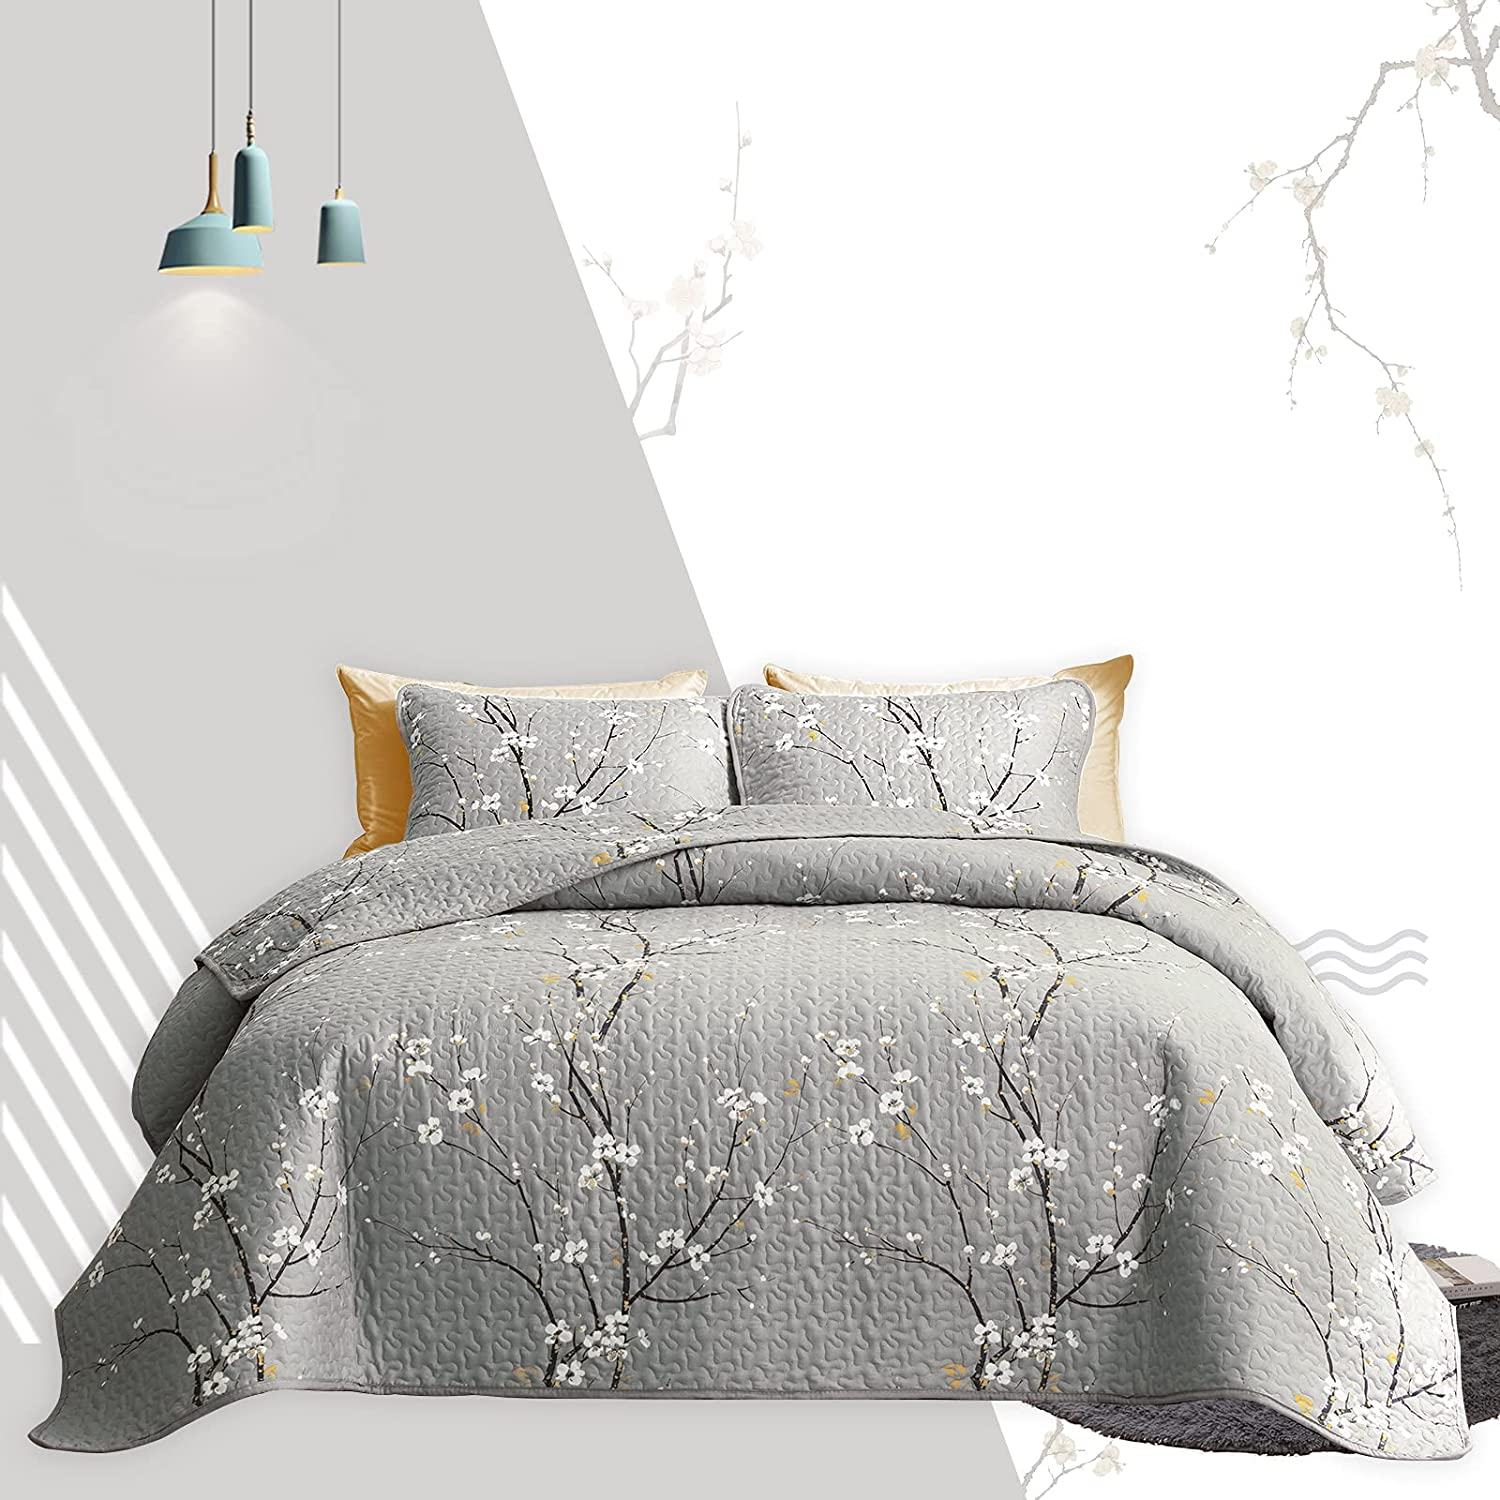 Quilt Set Bed mart in a Bag Max 56% OFF 7 Branch Summer Gray Queen Piece Size